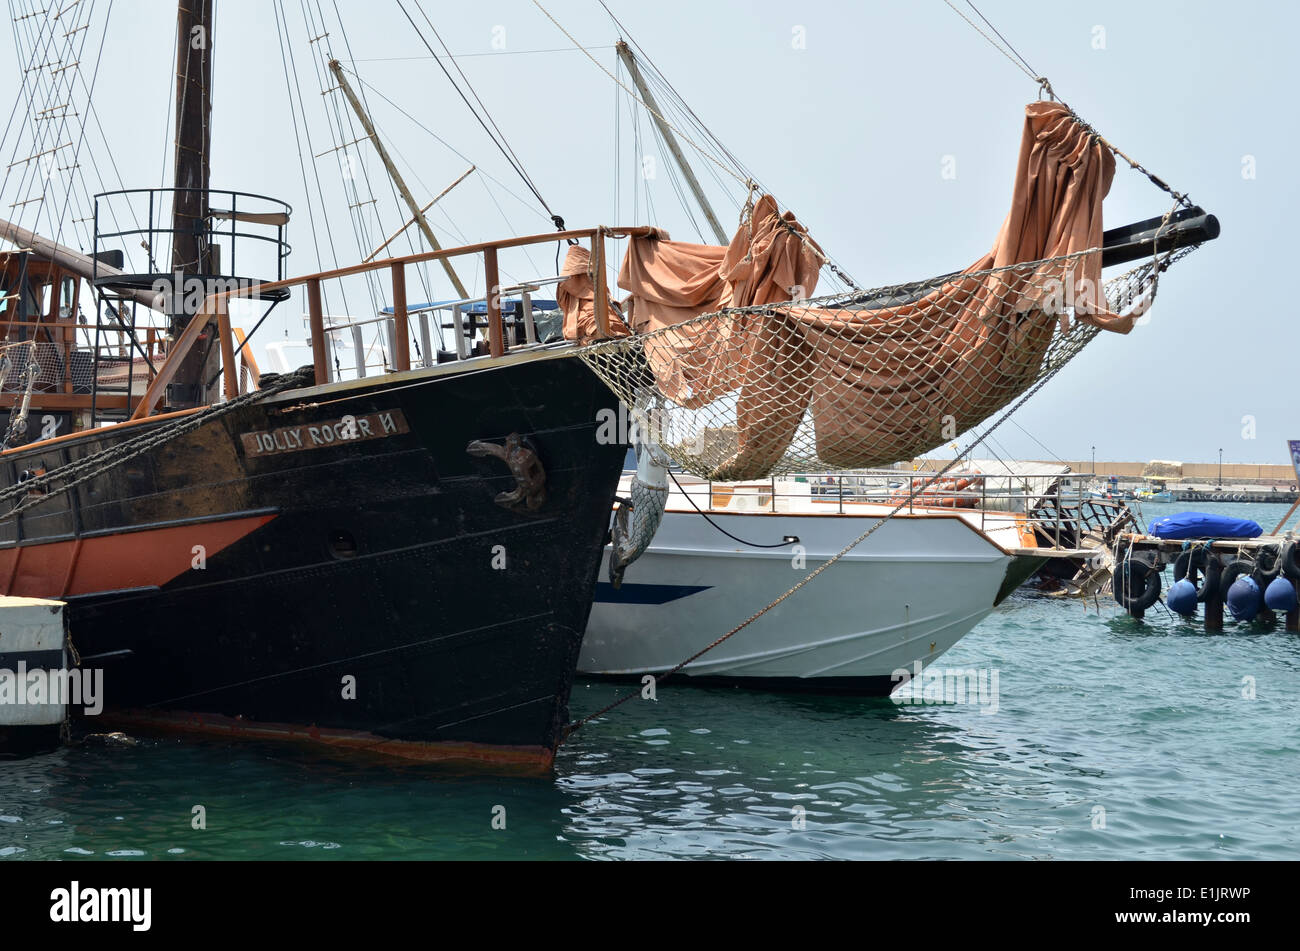 The famous 39 pirate ship of paphos habour 39 is our very own - Bateau pirate peter pan ...